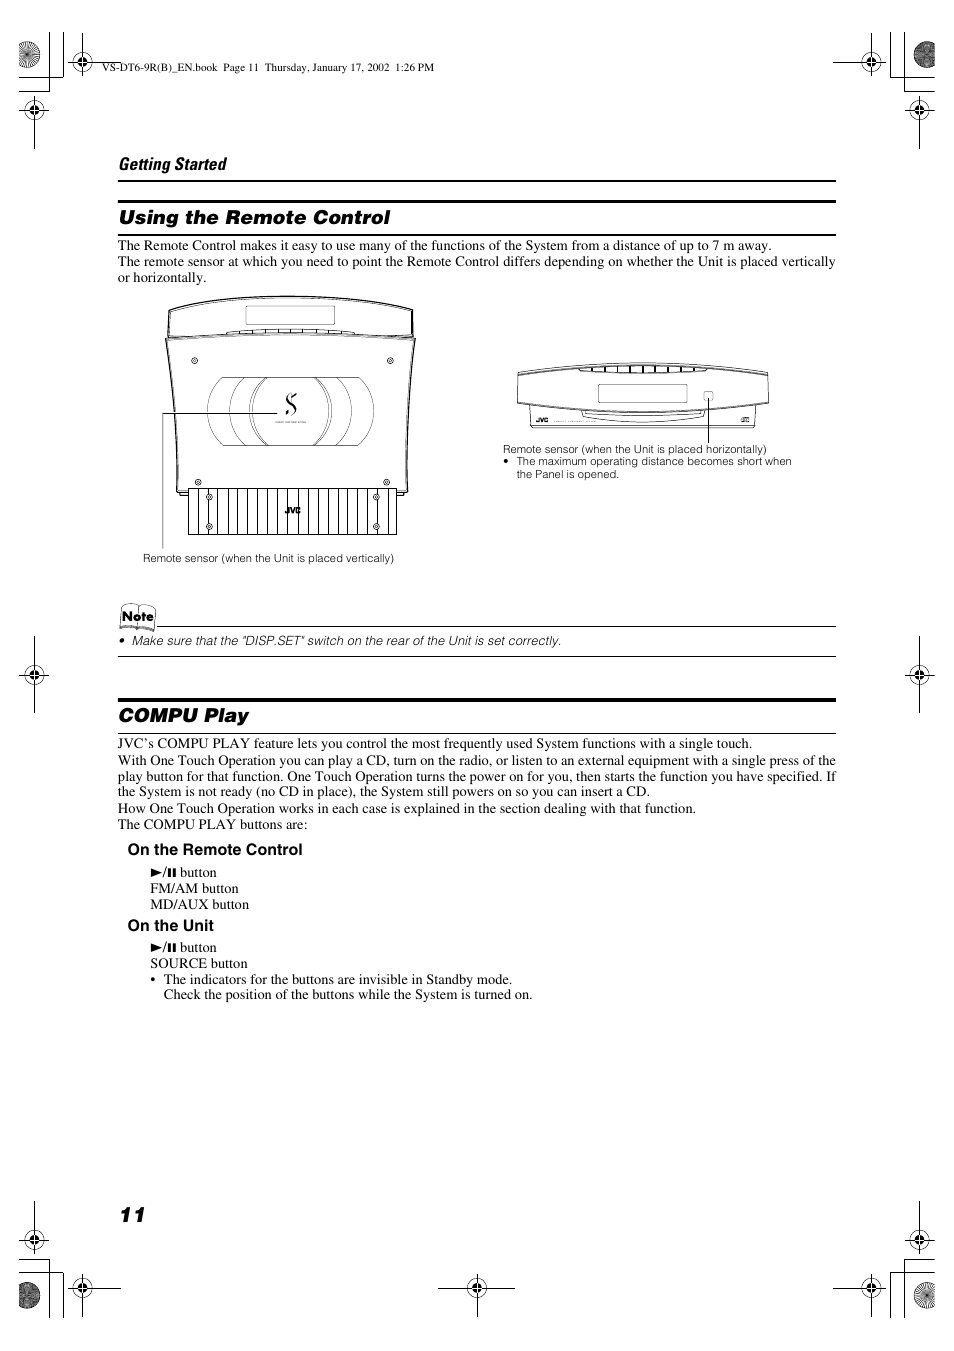 Using the remote control, Compu play | JVC VS-DT6R EN User Manual | Page 14  / 32